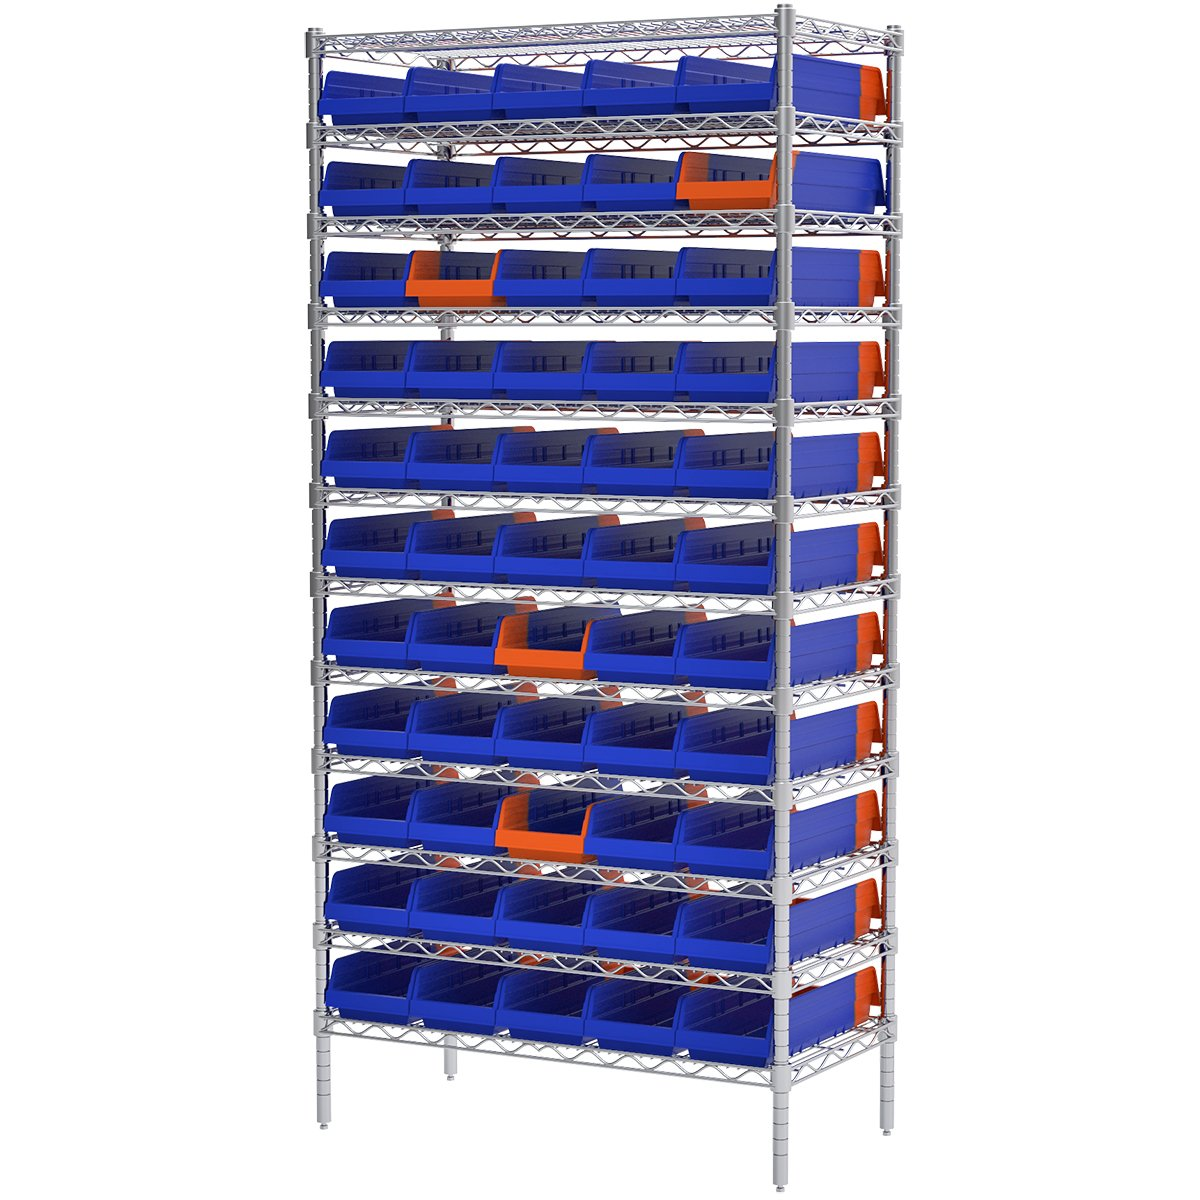 Akro-mils Aws183636468b Wire Bin Shelving System With 12 Shelves And